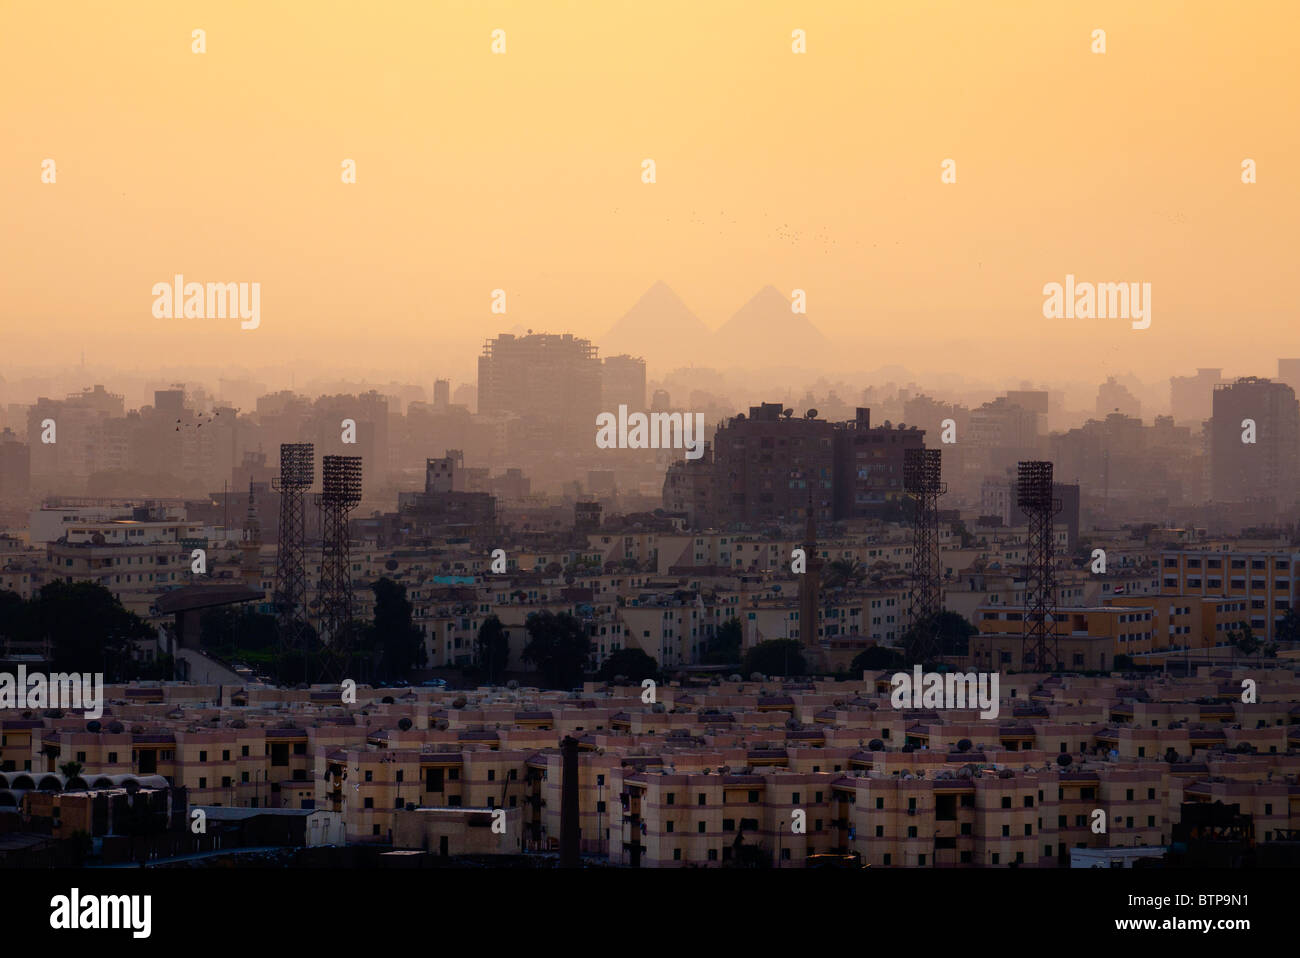 Cairo city skyline and Pyramids - Stock Image